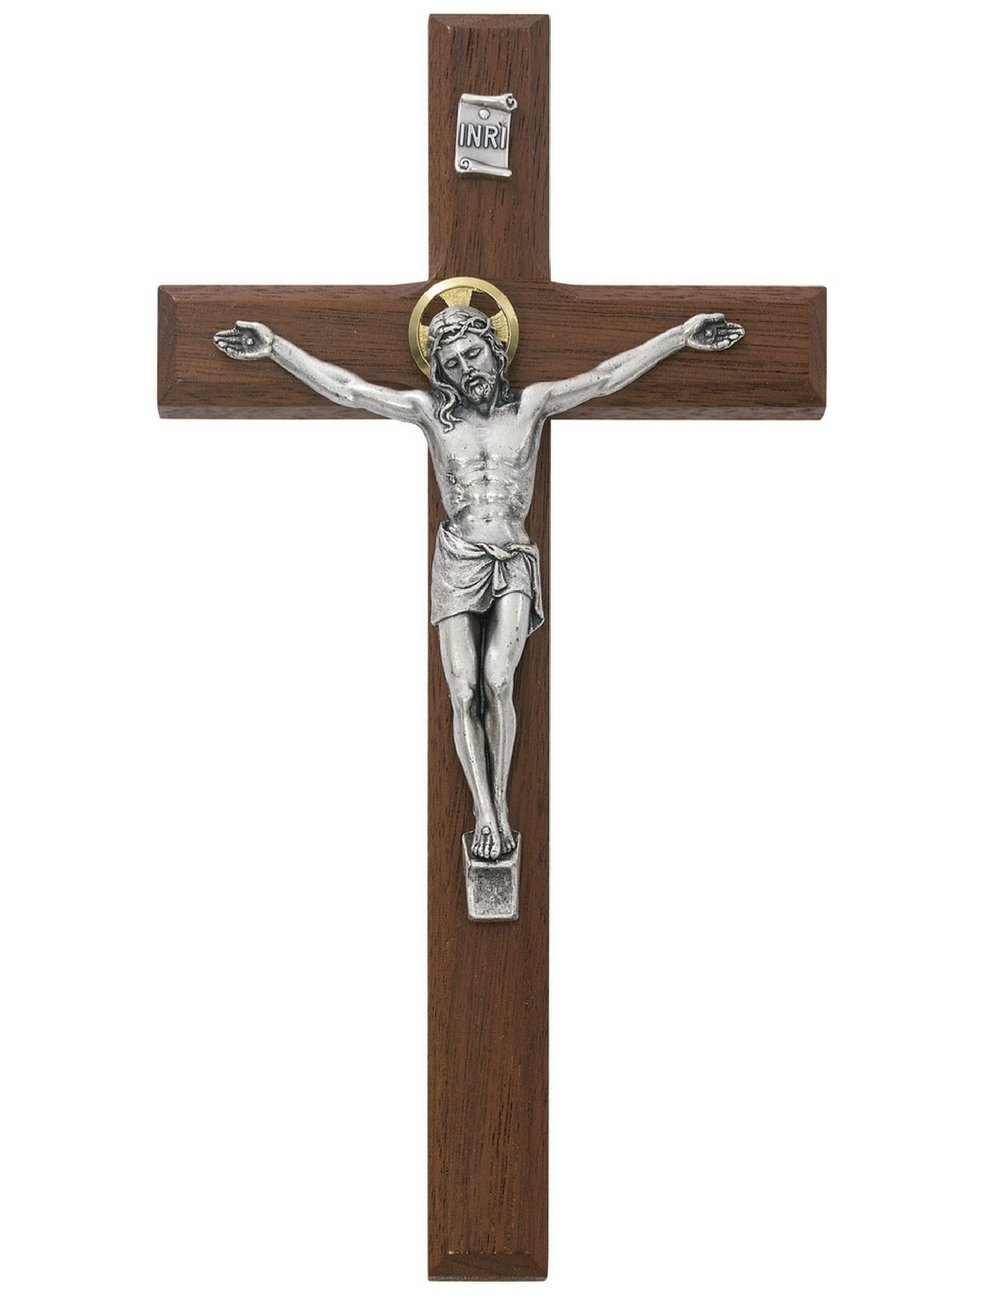 All Patron Saints Beveled Walnut Crucifix Wall Cross with Silver Color Corpus and INRI 8 Inch by All Patron Saints